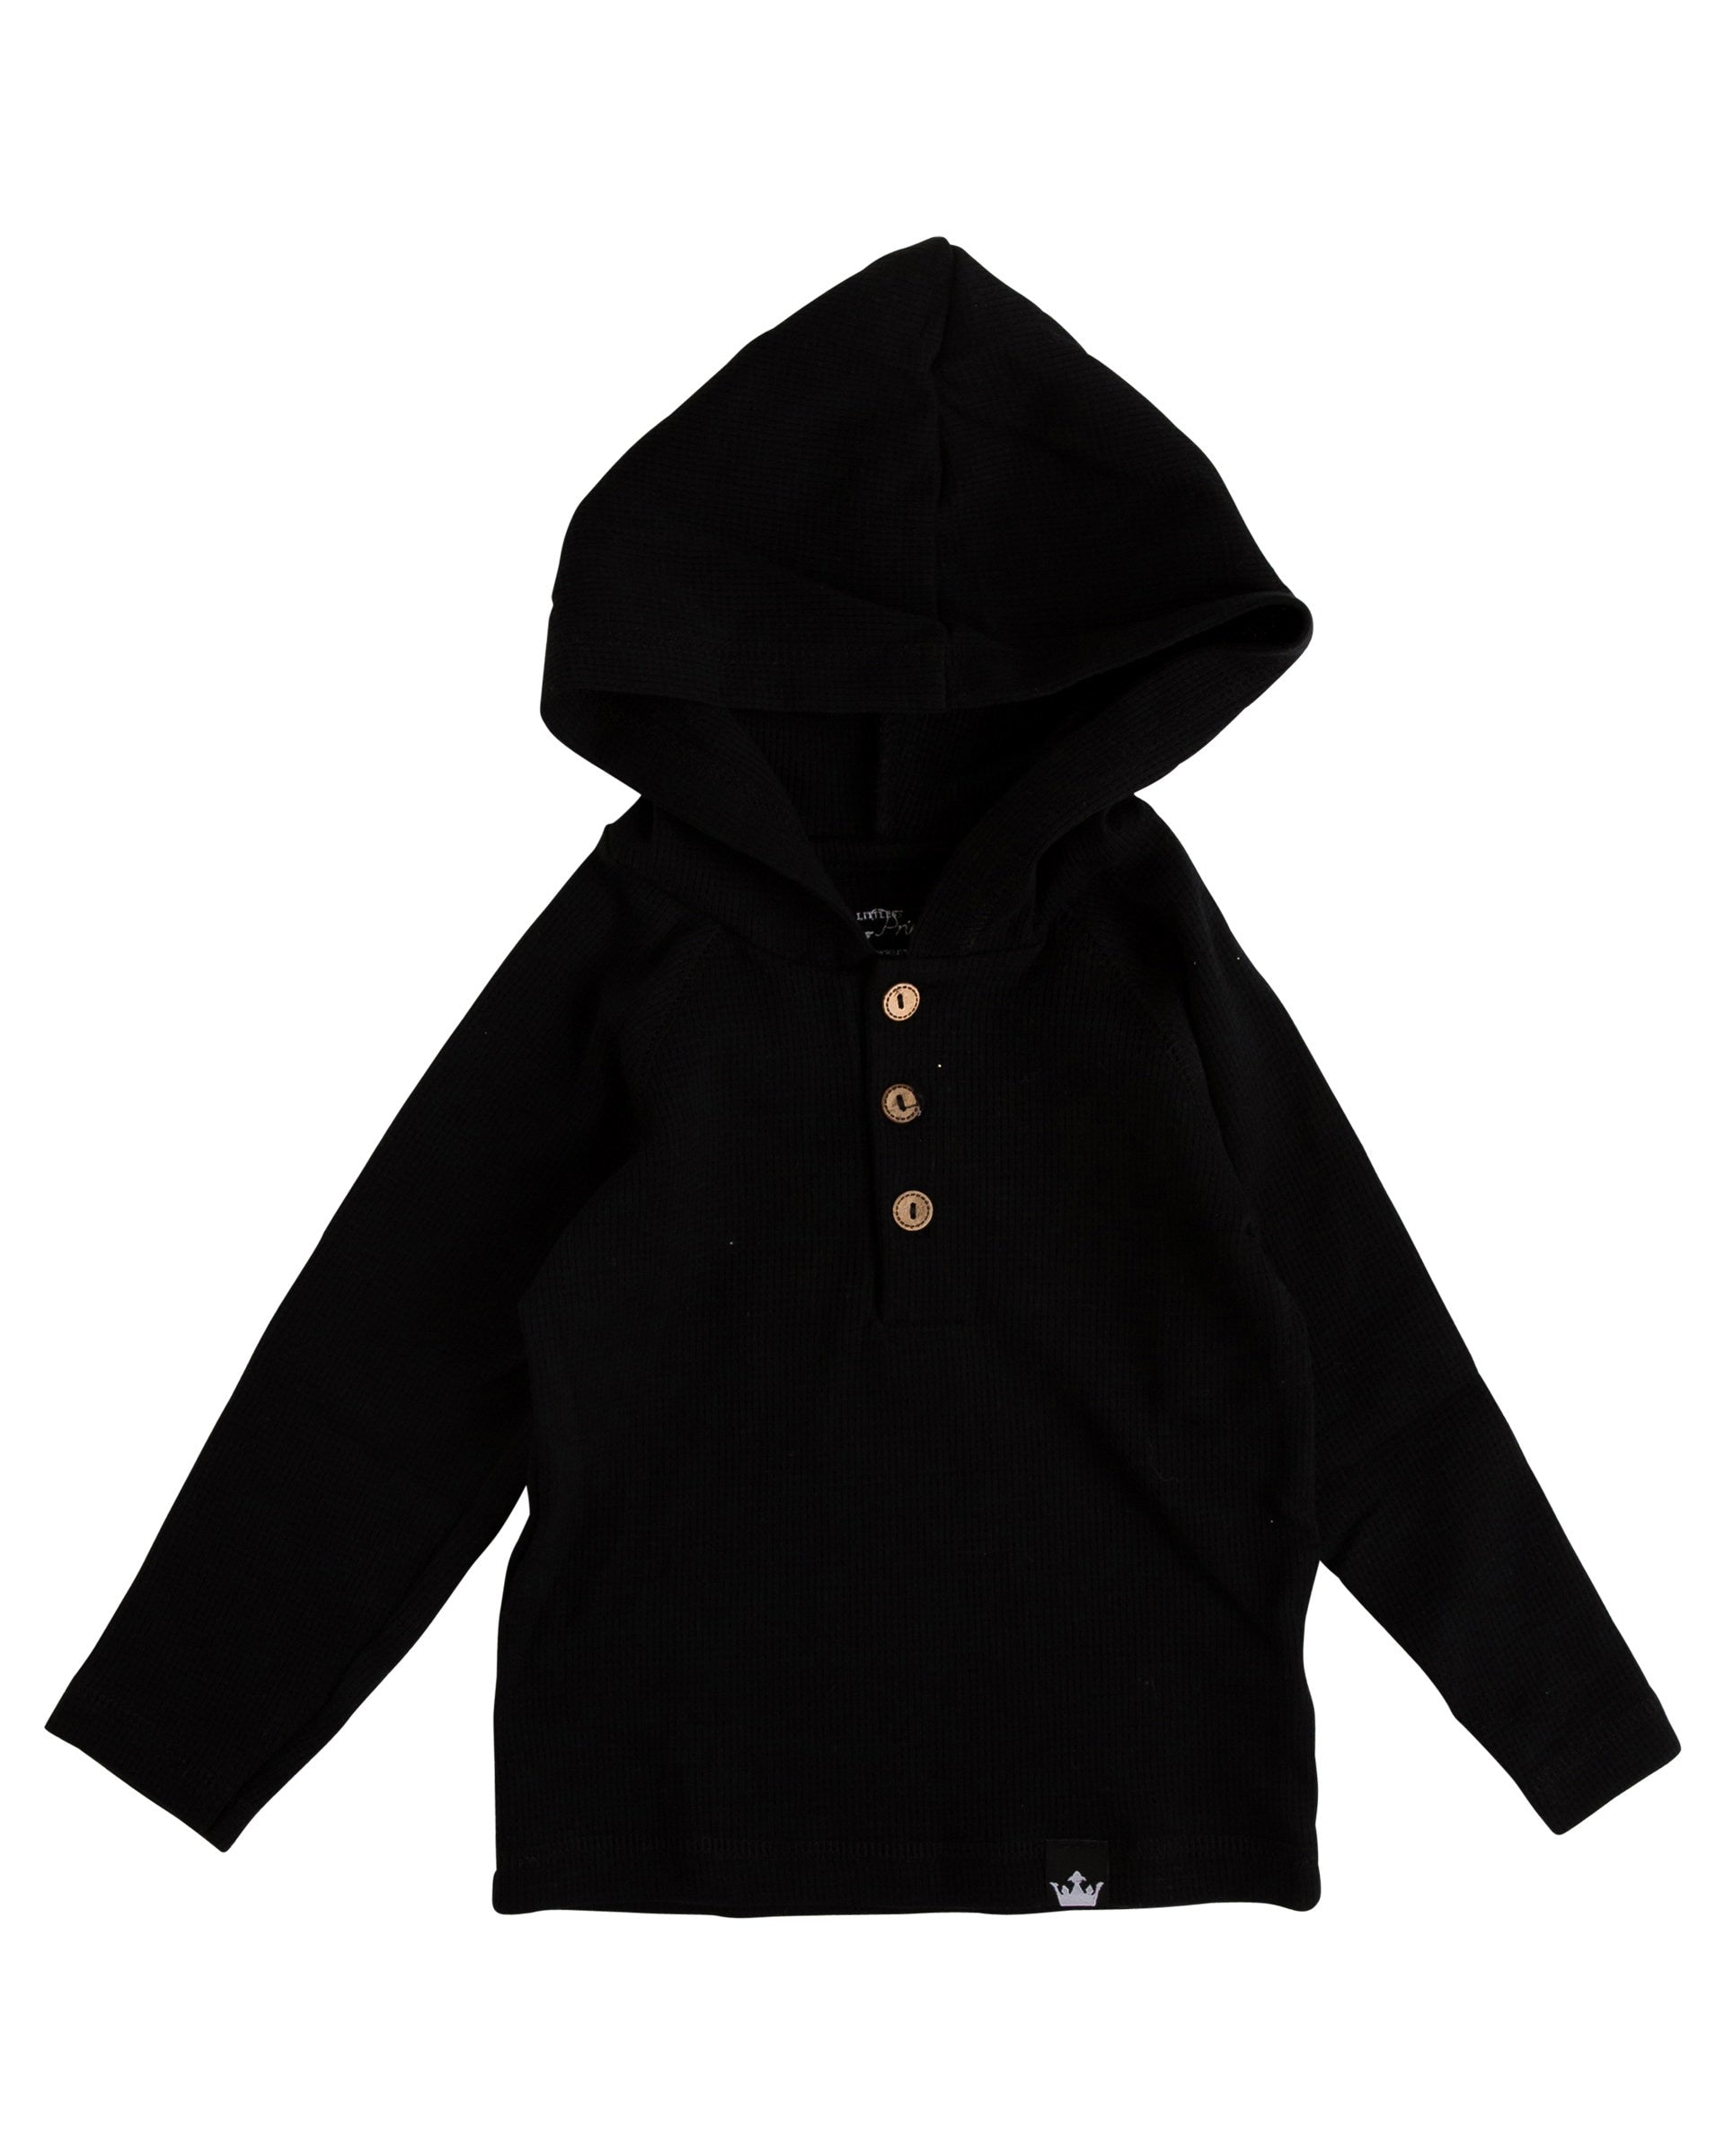 thhoodk-bla-black-thermal-hoodie-shirt-front.jpg